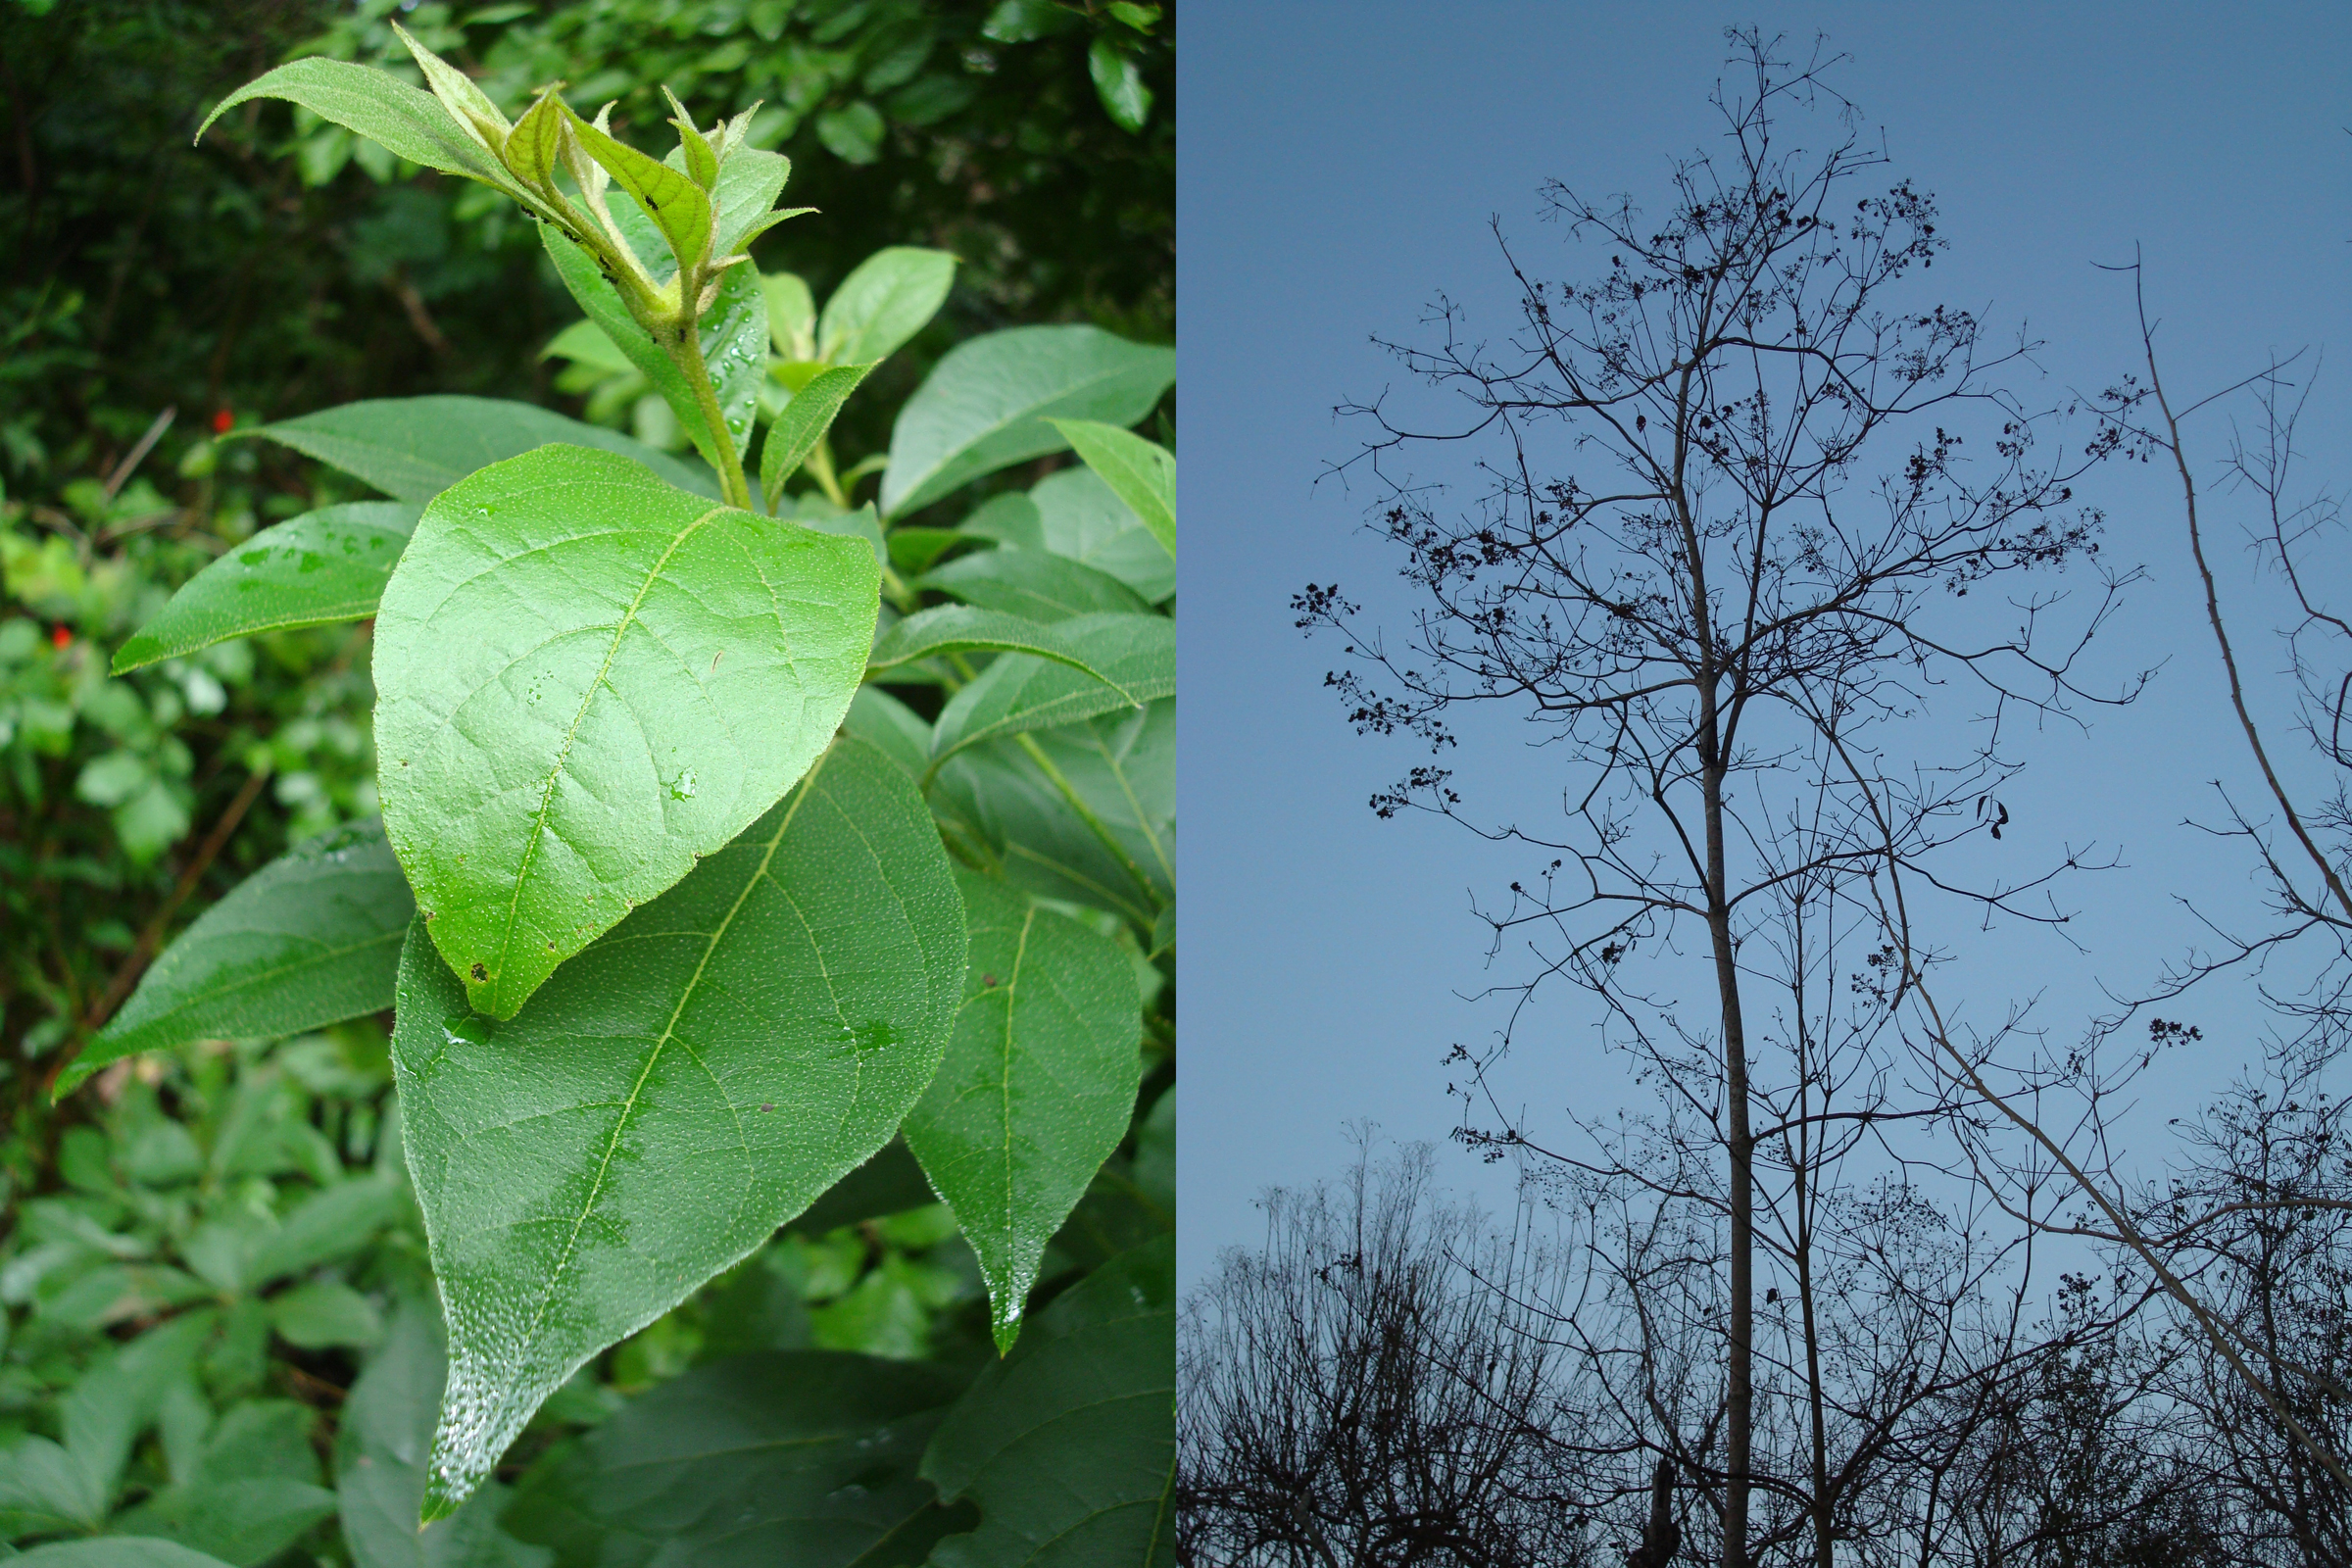 Ecuador laurel trees in the wet season (left) and dry season. Azteca ants are visible on the upper leaves in the photo on the left. The trees grow new leaves each rainy season, and those leaves produce the tree's carbon-based food. In tropical forests where water is scarce, laurel trees make less carbon and pay ants more to protect their leaves. Image credit: Elizabeth G. Pringle